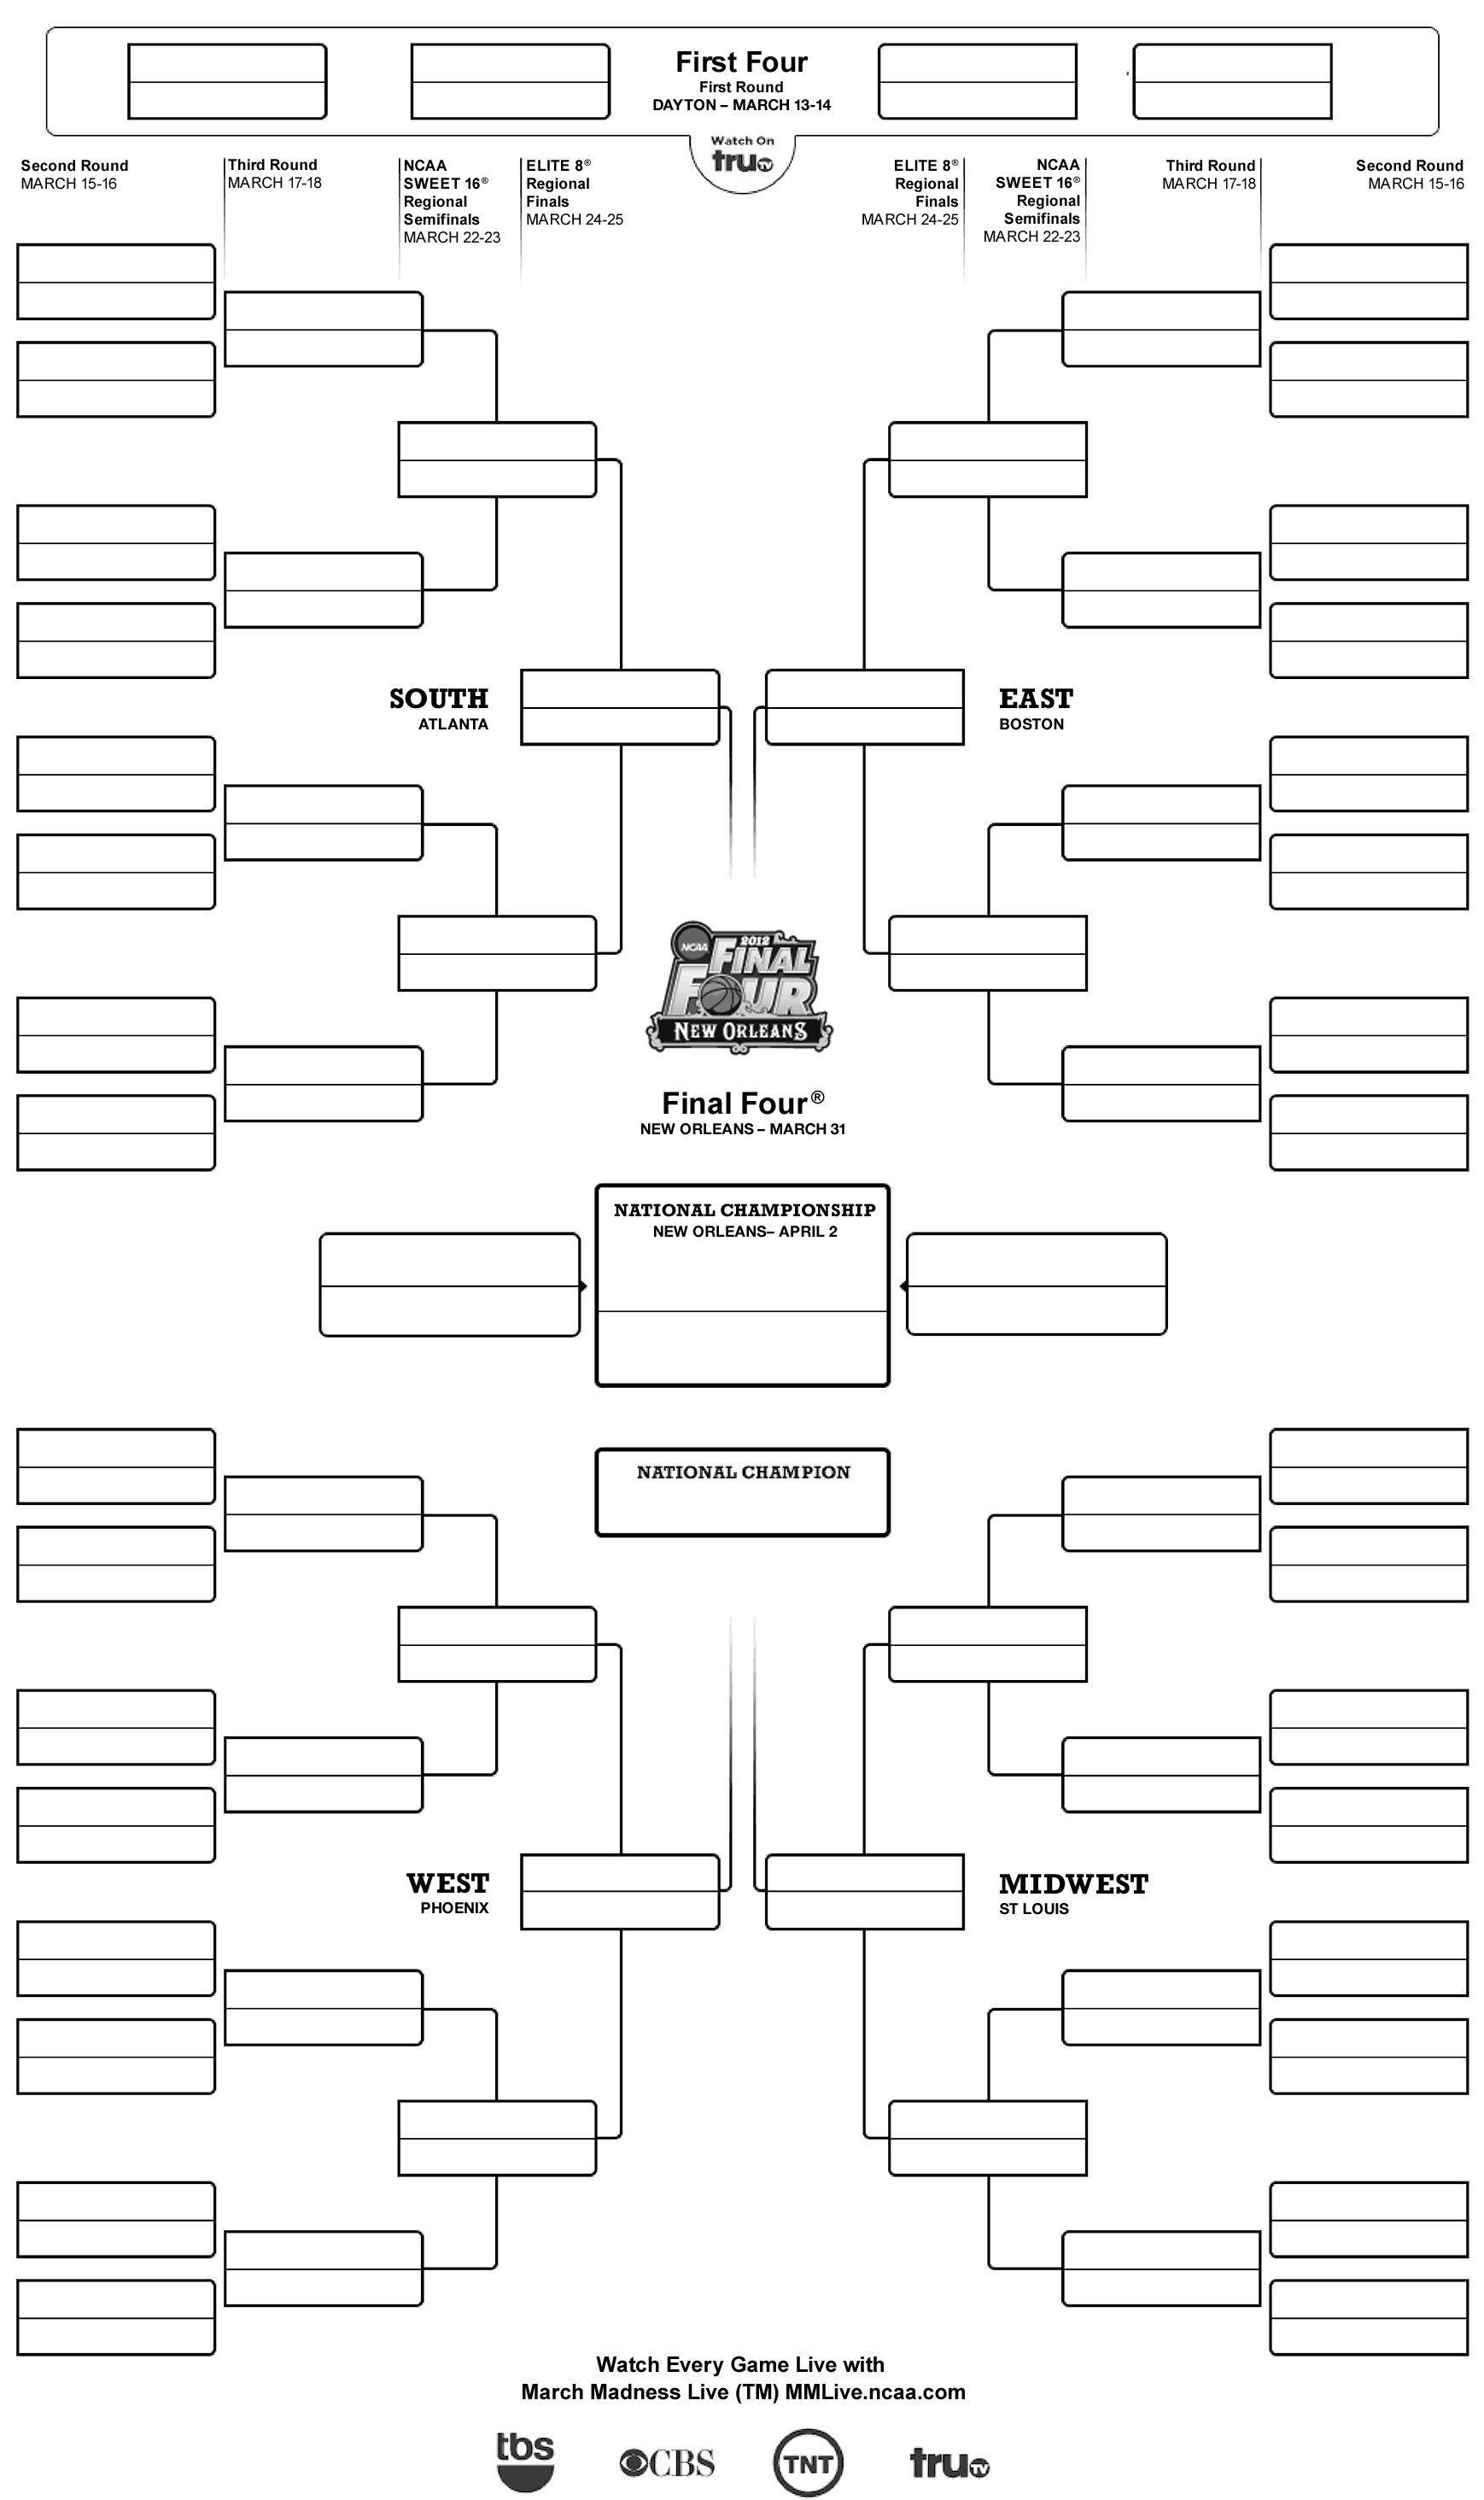 March Madness 2012: NCAA College Basketball Championships